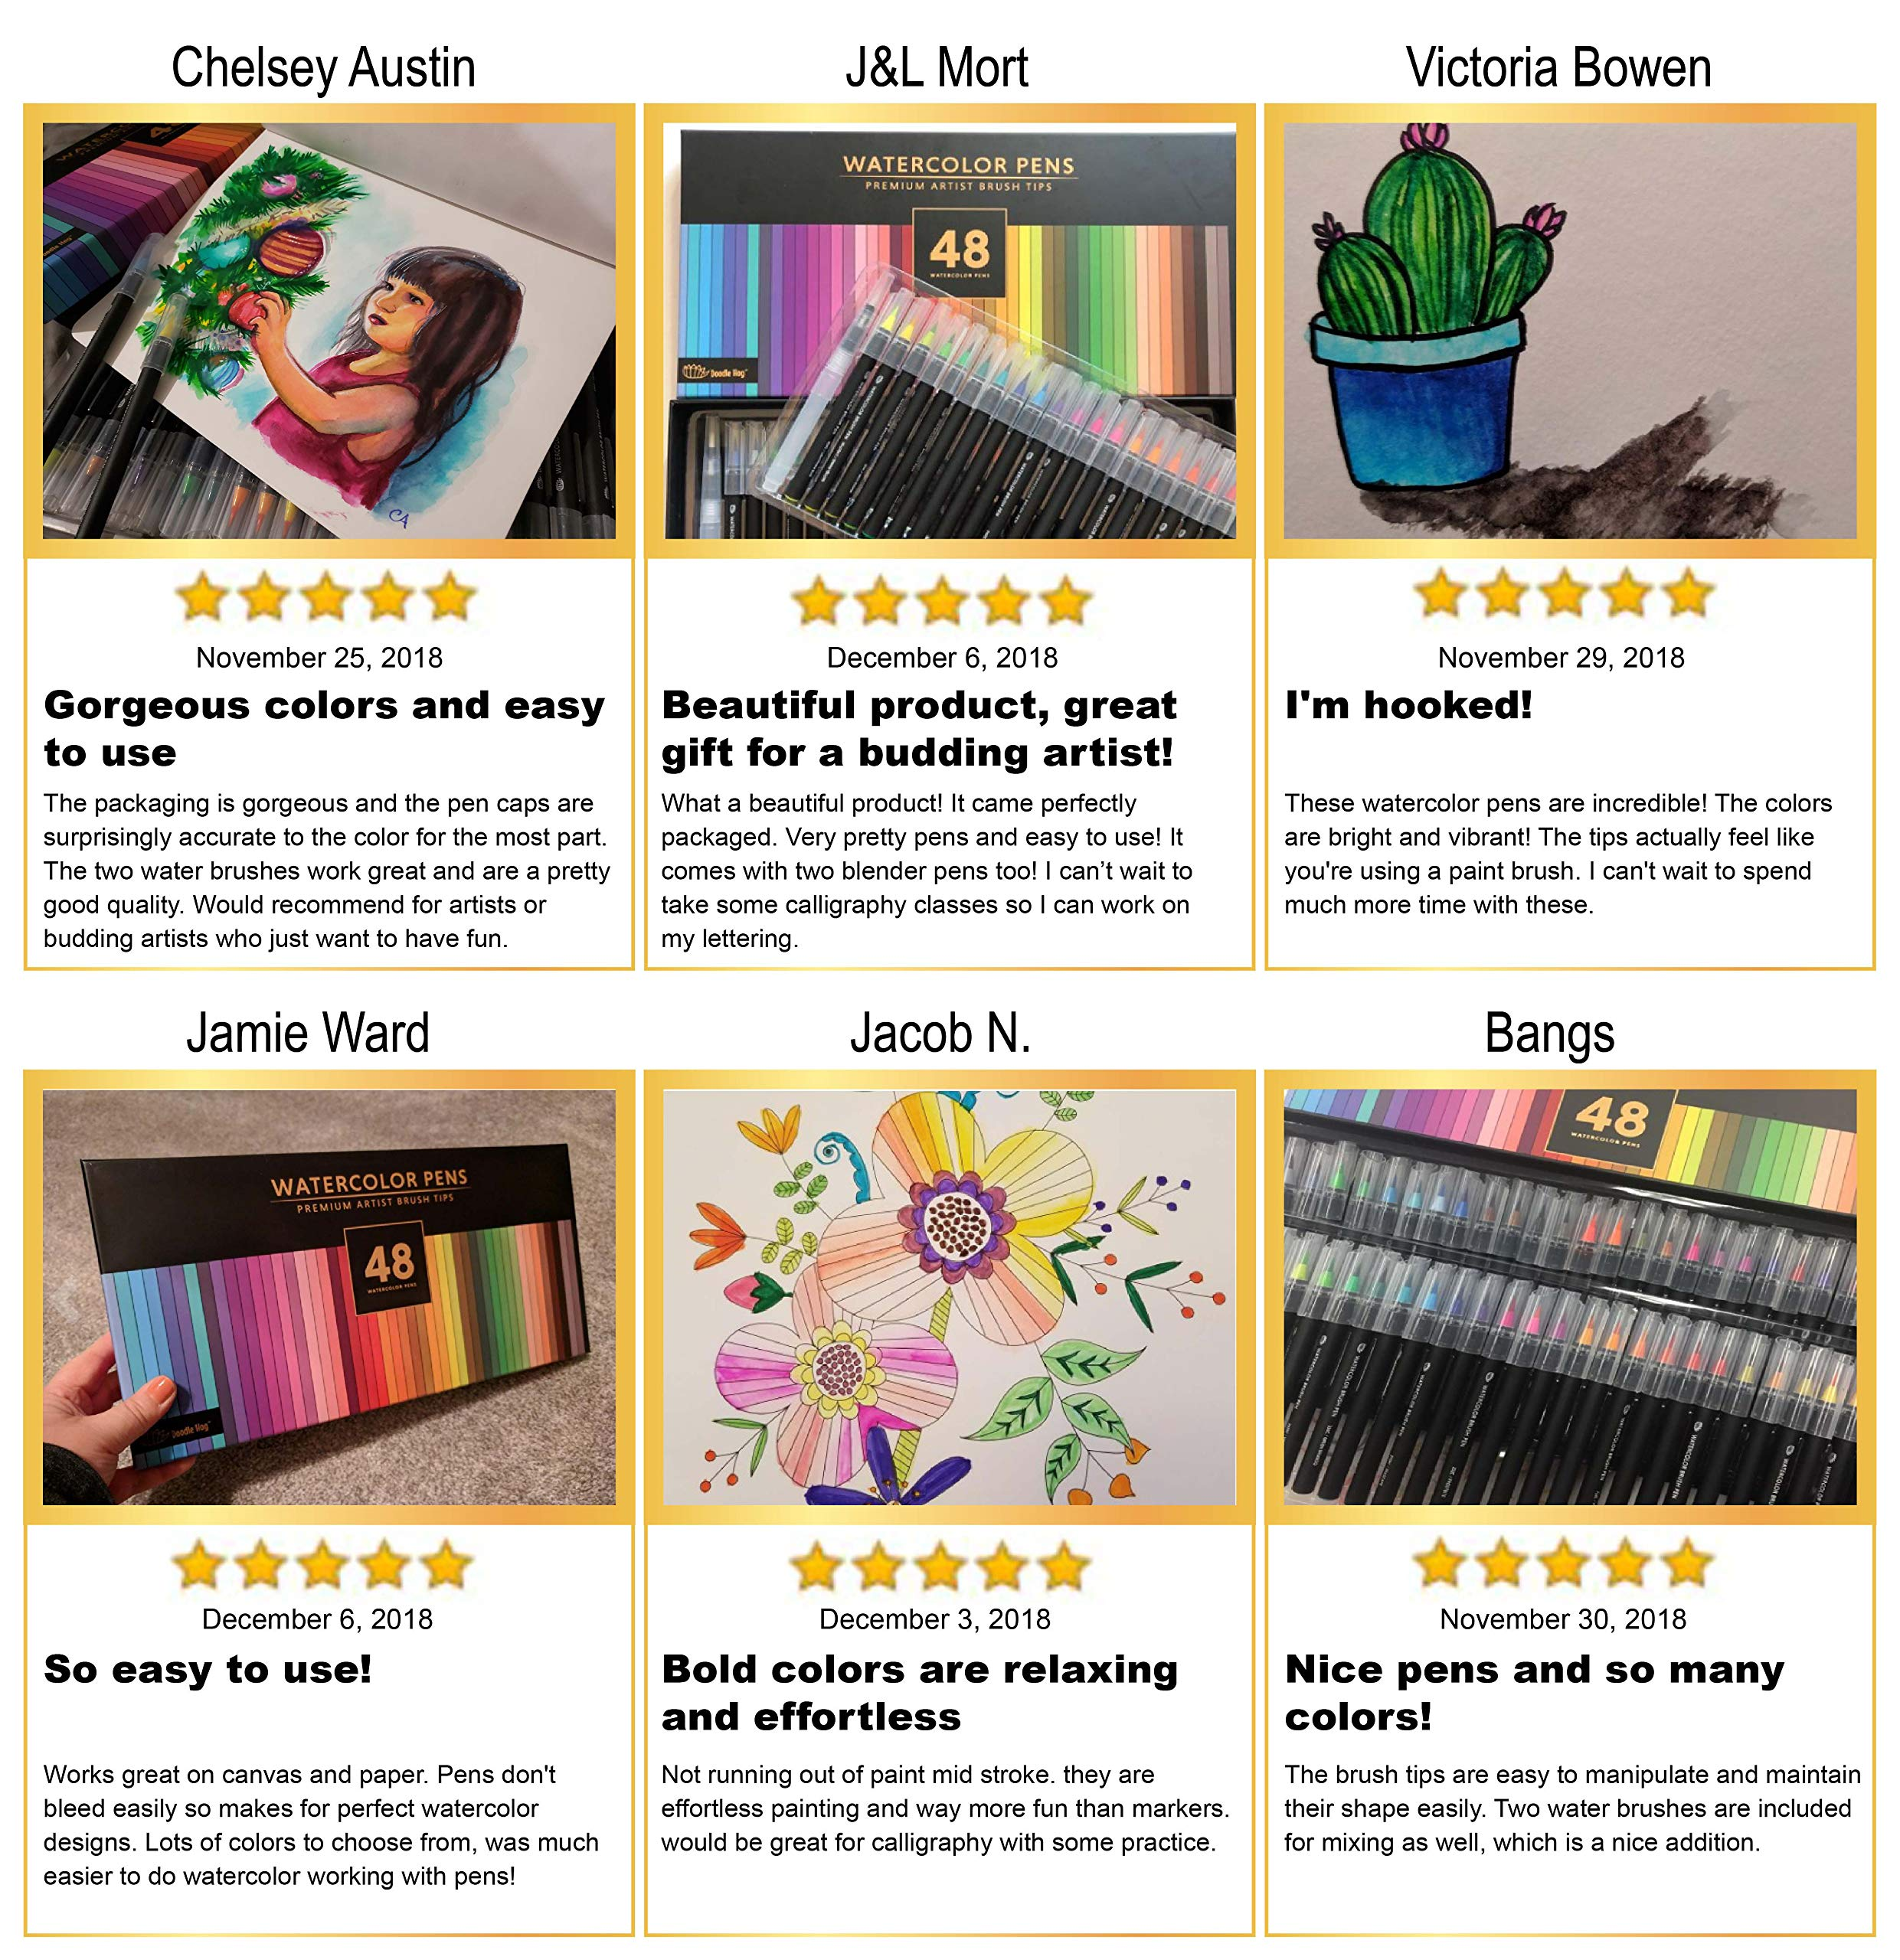 Gift Box, 48 Premium Watercolor Brush Pens, Highly Blend-Able, No Streaks, Water Color Markers, Unbelievable Value, Water Brush Pens For Beginner To Professional Artist by Dab and Dot Markers (Image #6)